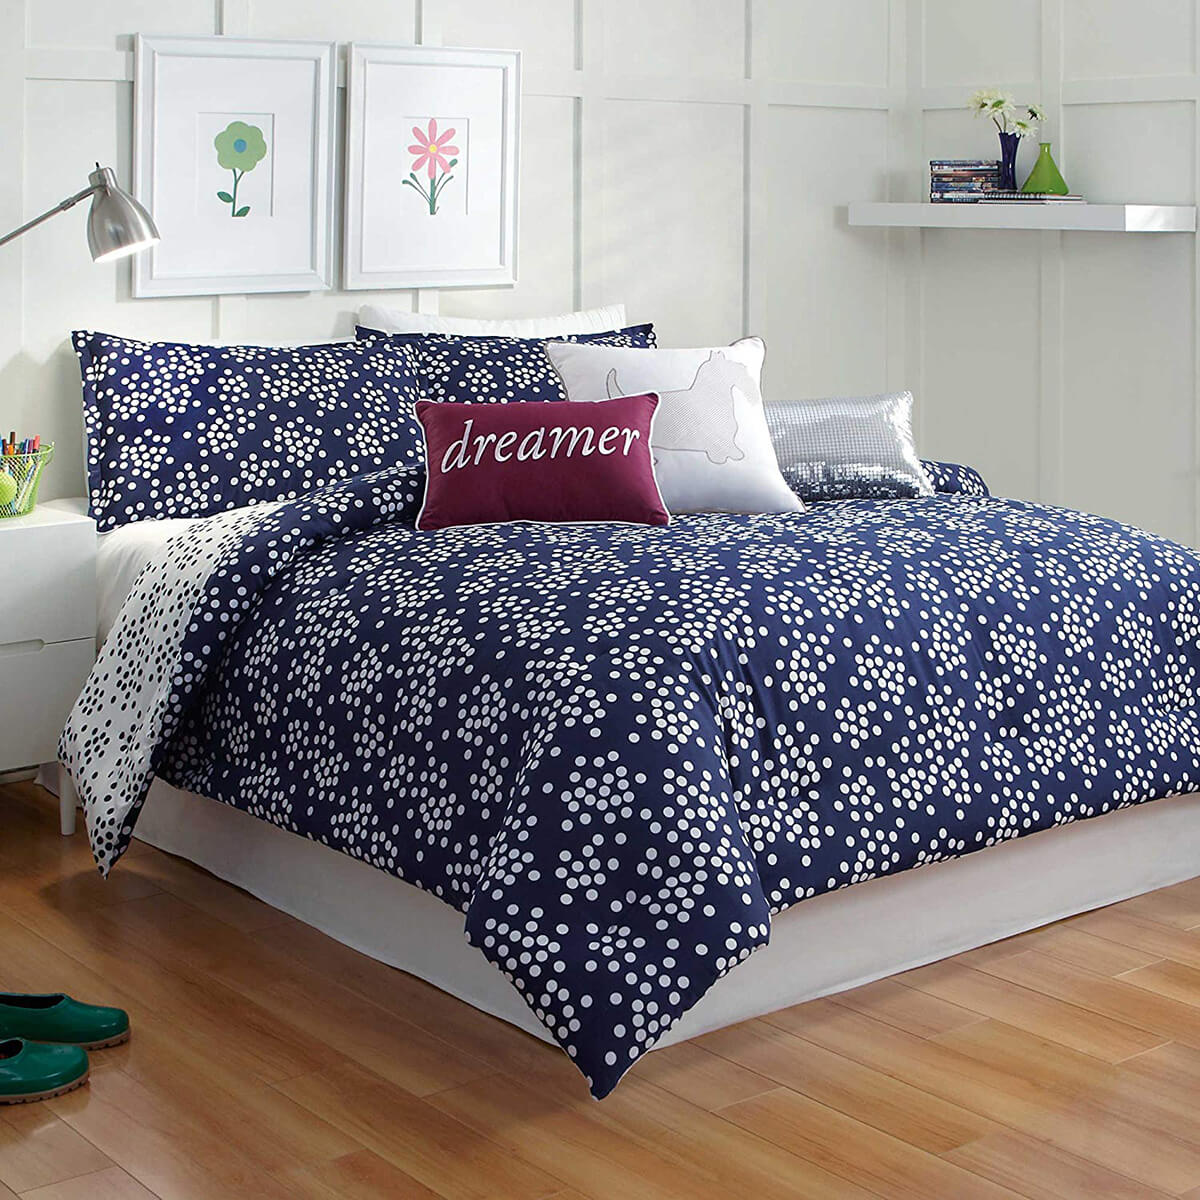 Preppy Navy Blue Bedroom and White Reversible Bedding